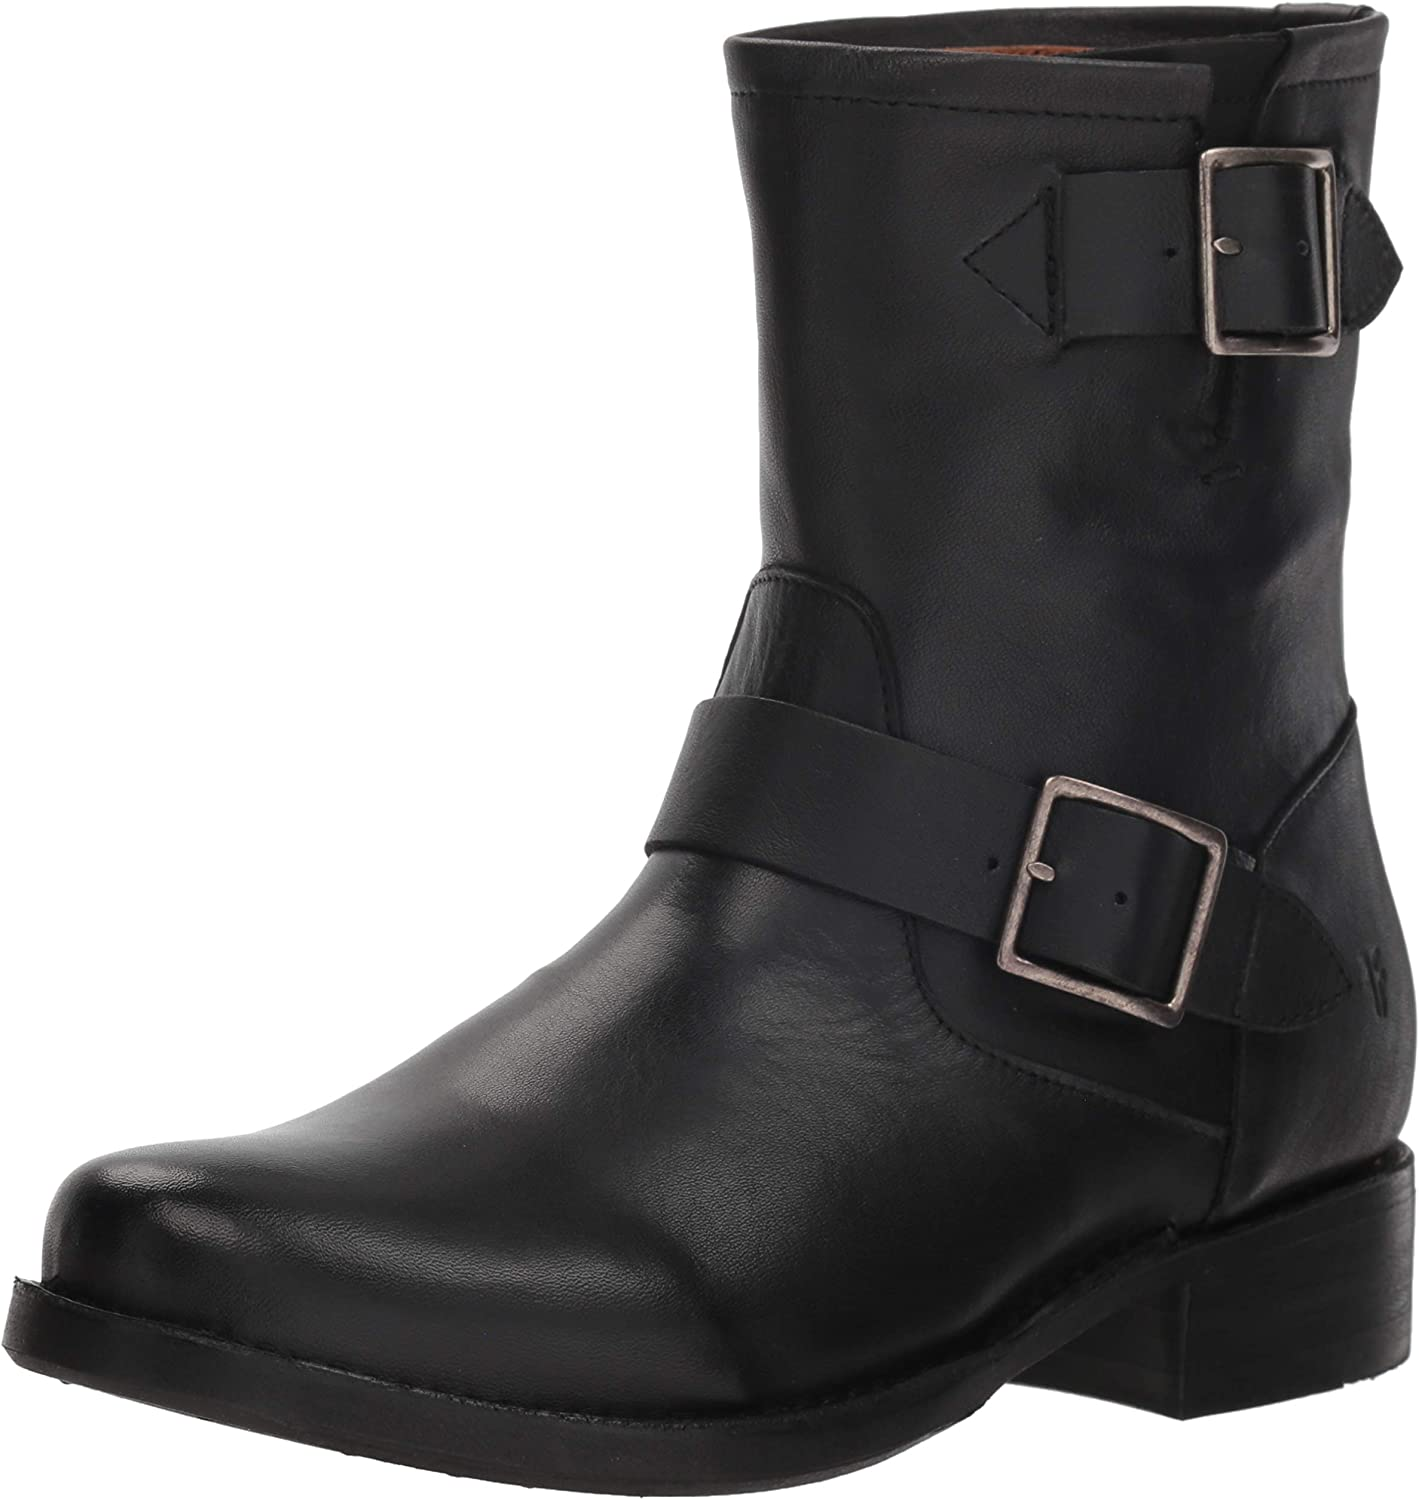 Frye Womens Vicky Engineer Ankle Boot